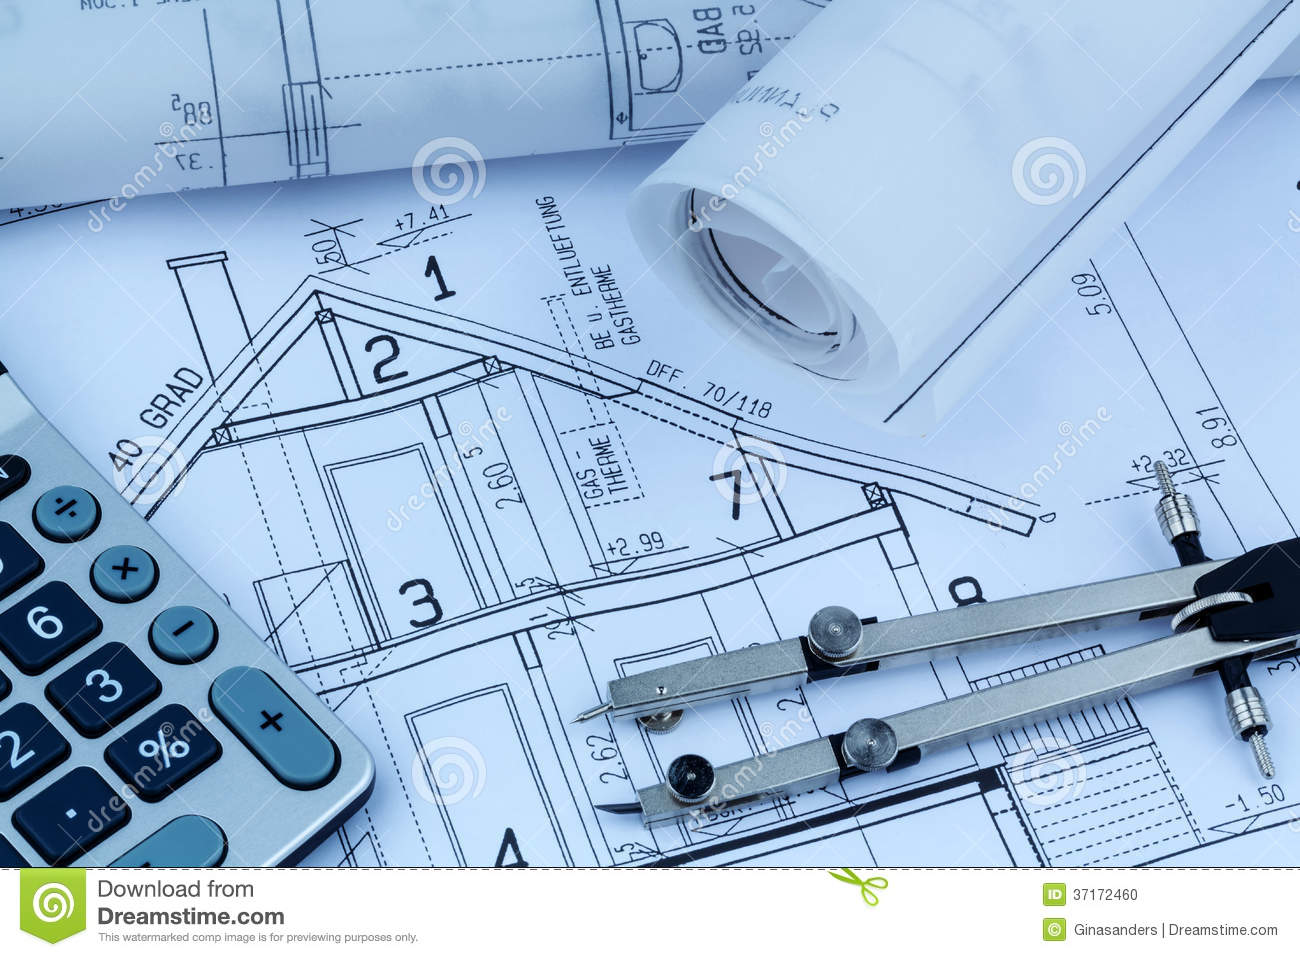 House Plan With Calculator Stock Photo Image 37172460